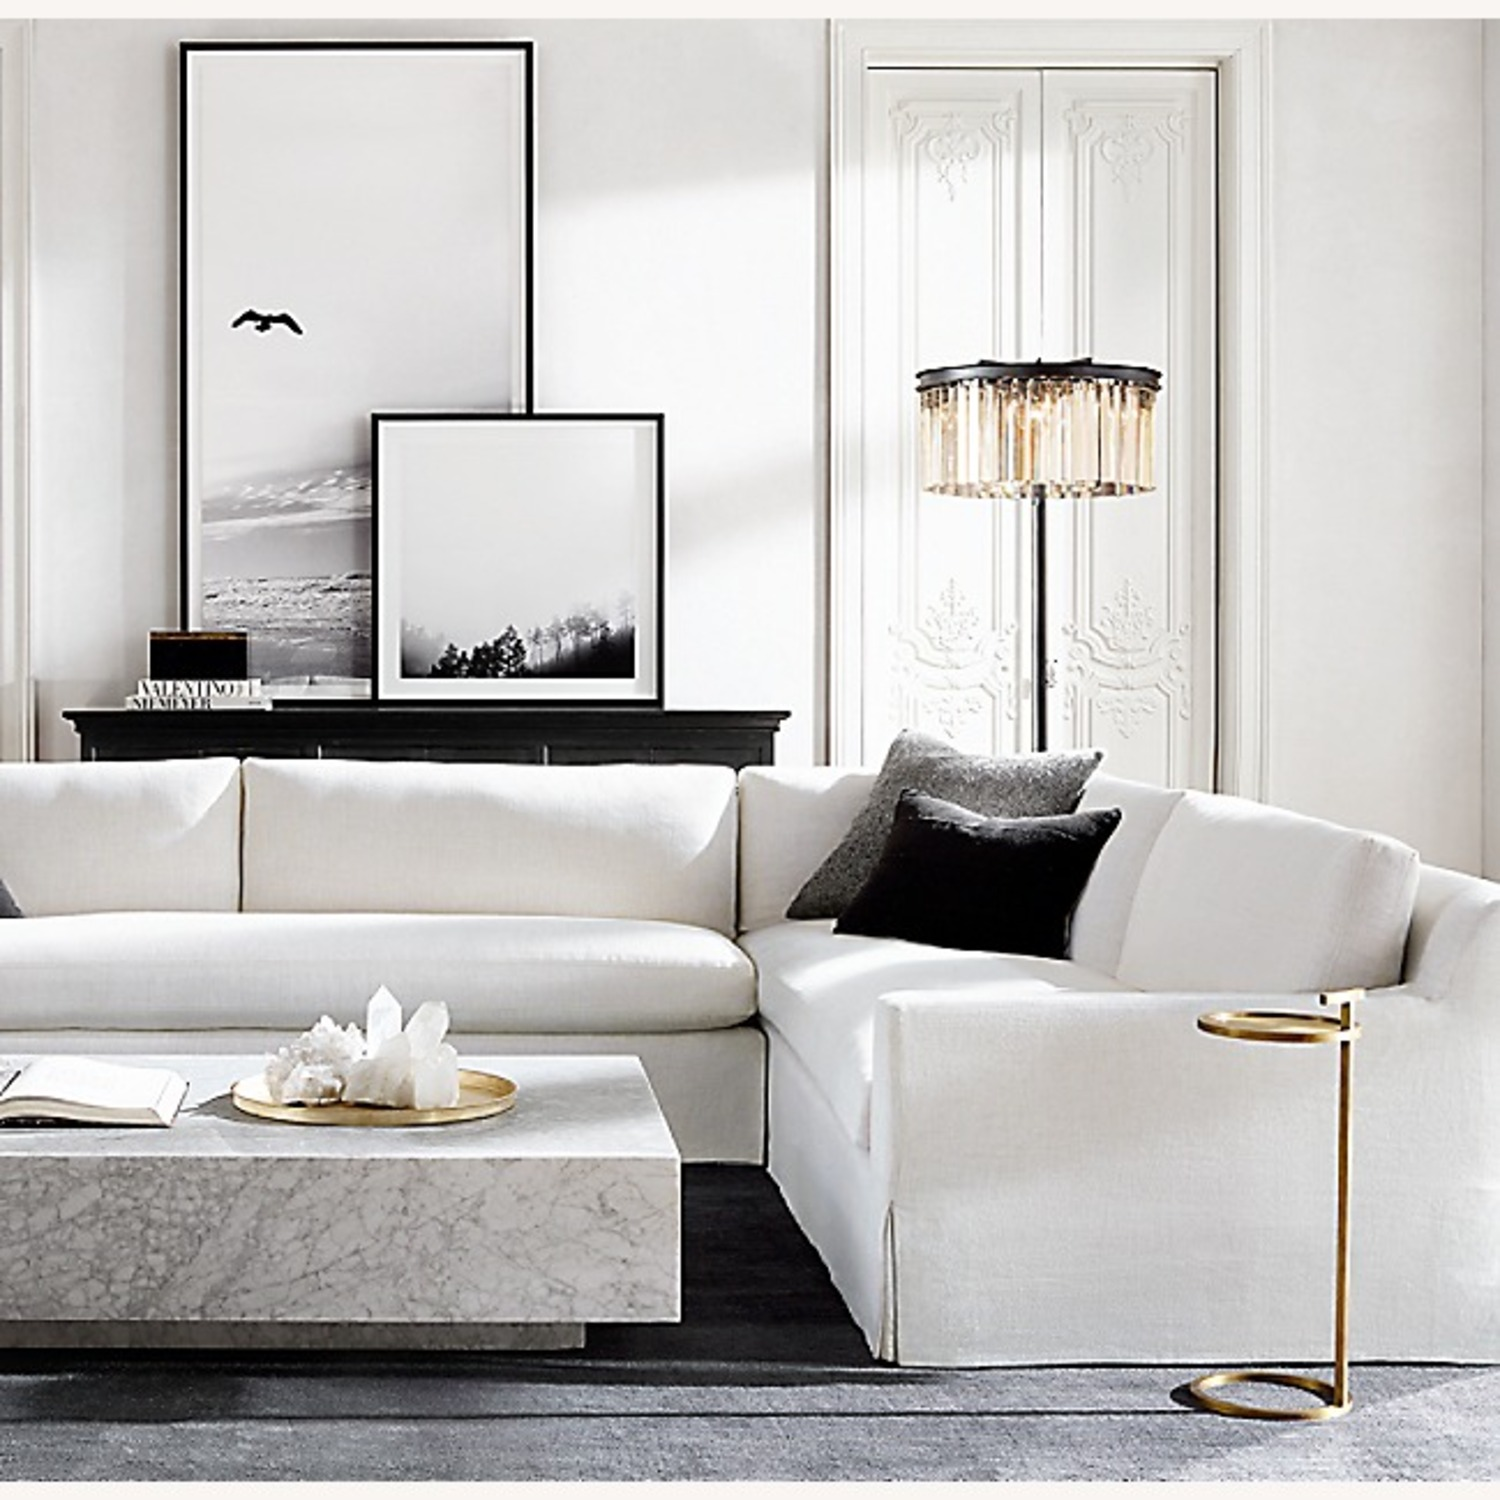 Restoration Hardware Marble Plinth Coffee Table - image-2